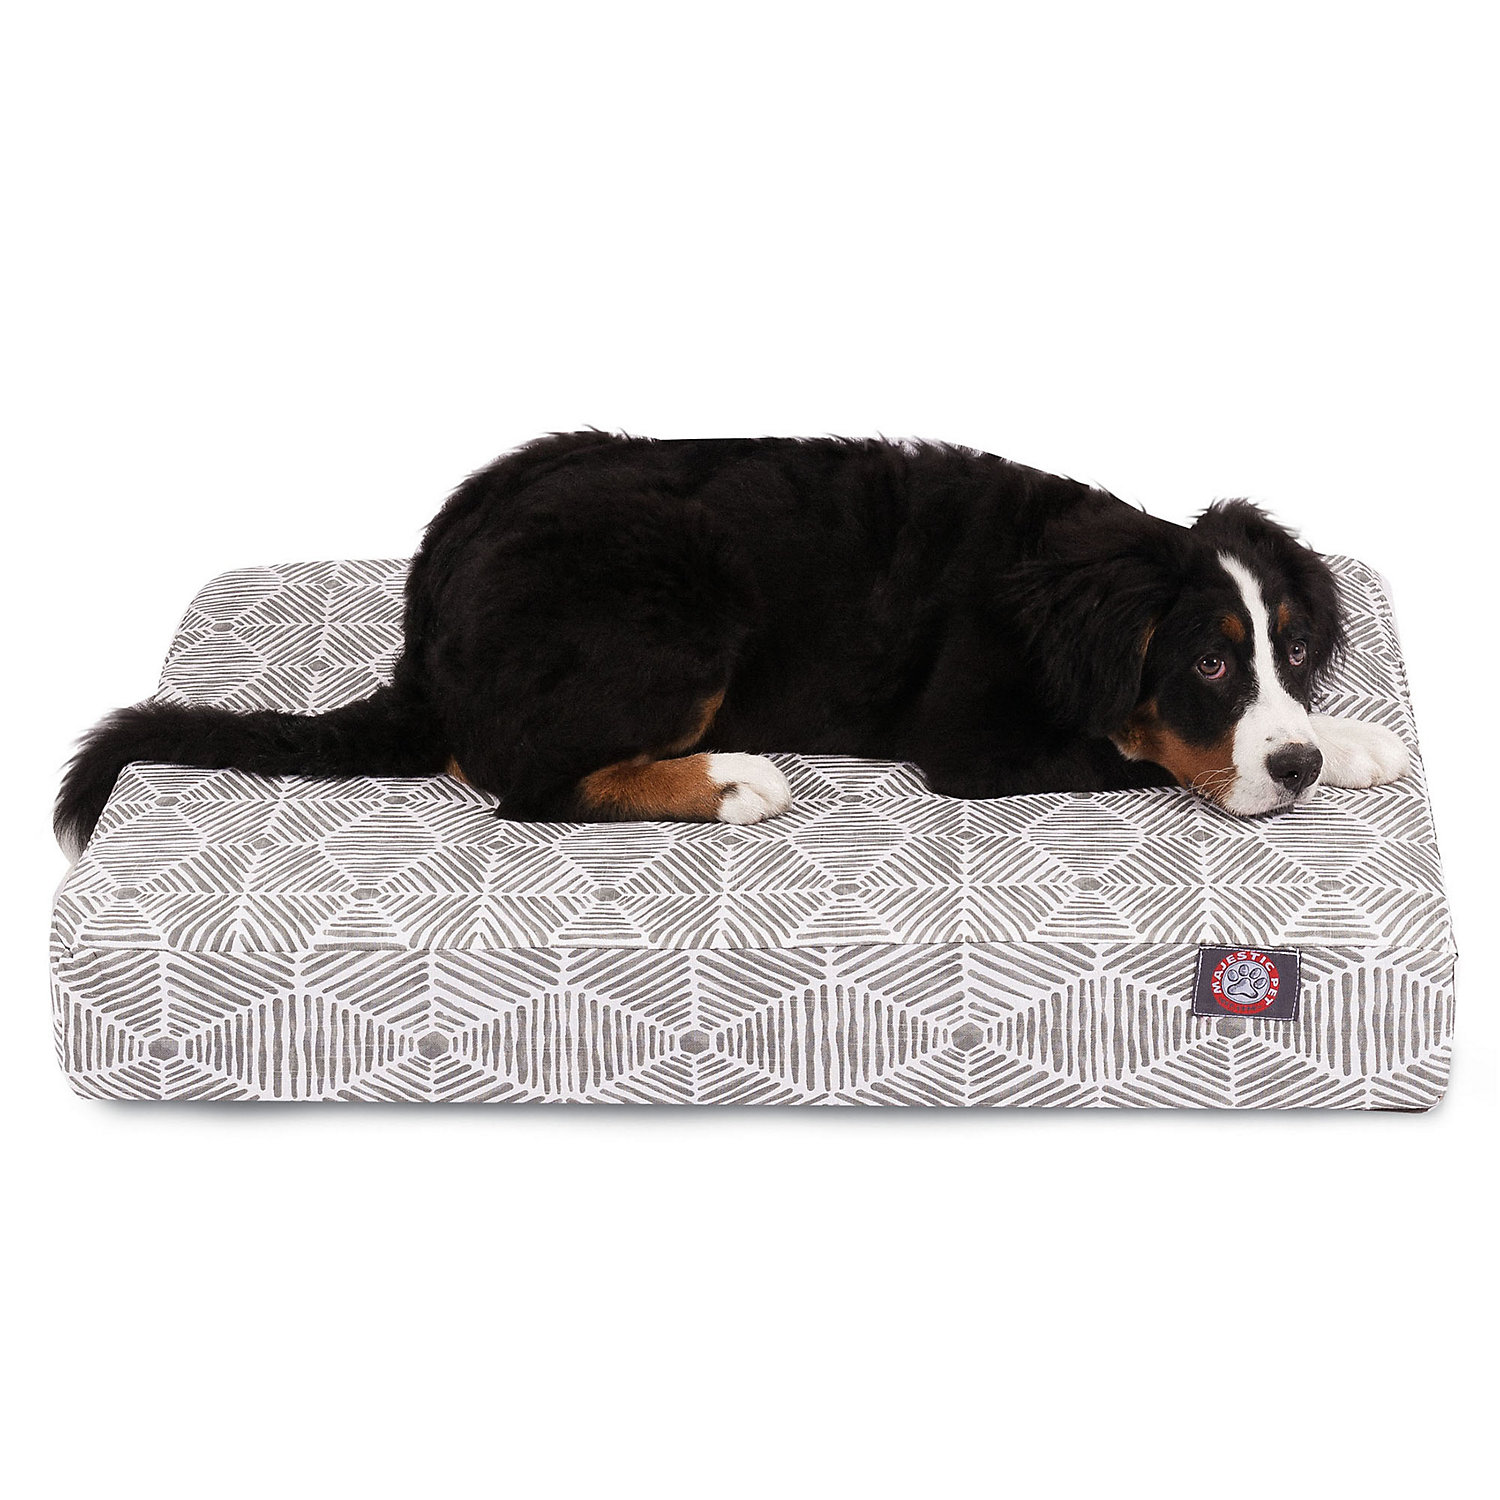 Majestic Pet Gray Charlie Orthopedic Memory Foam Rectangle Dog Bed 36 L x 29 L Large Grey